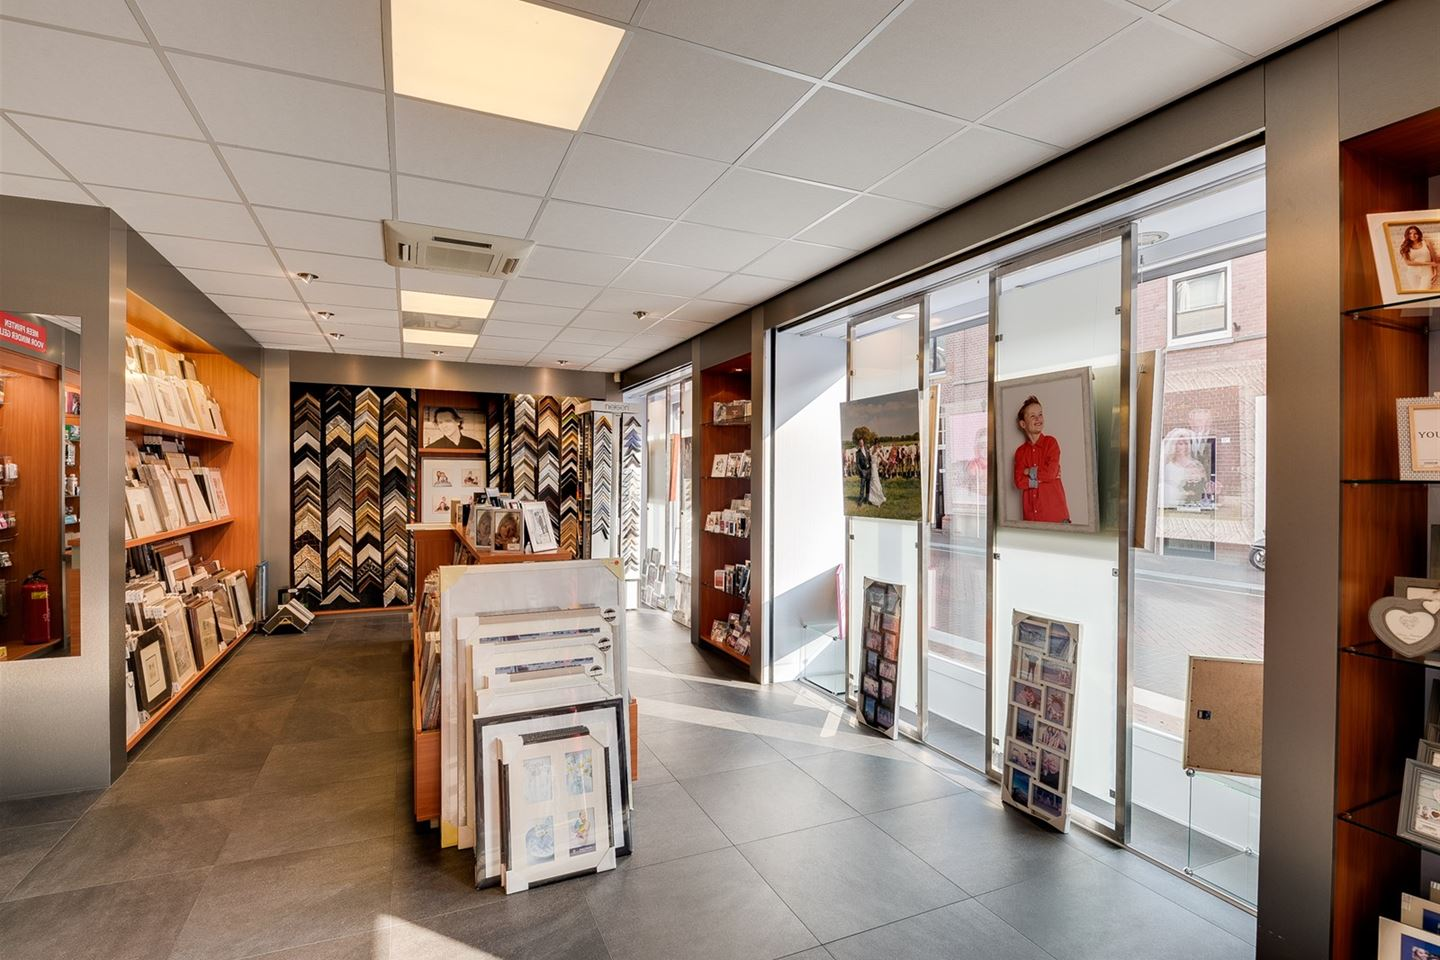 Banken Outlet Asten Retail Outlet Asten Search Retail Outlets For Sale